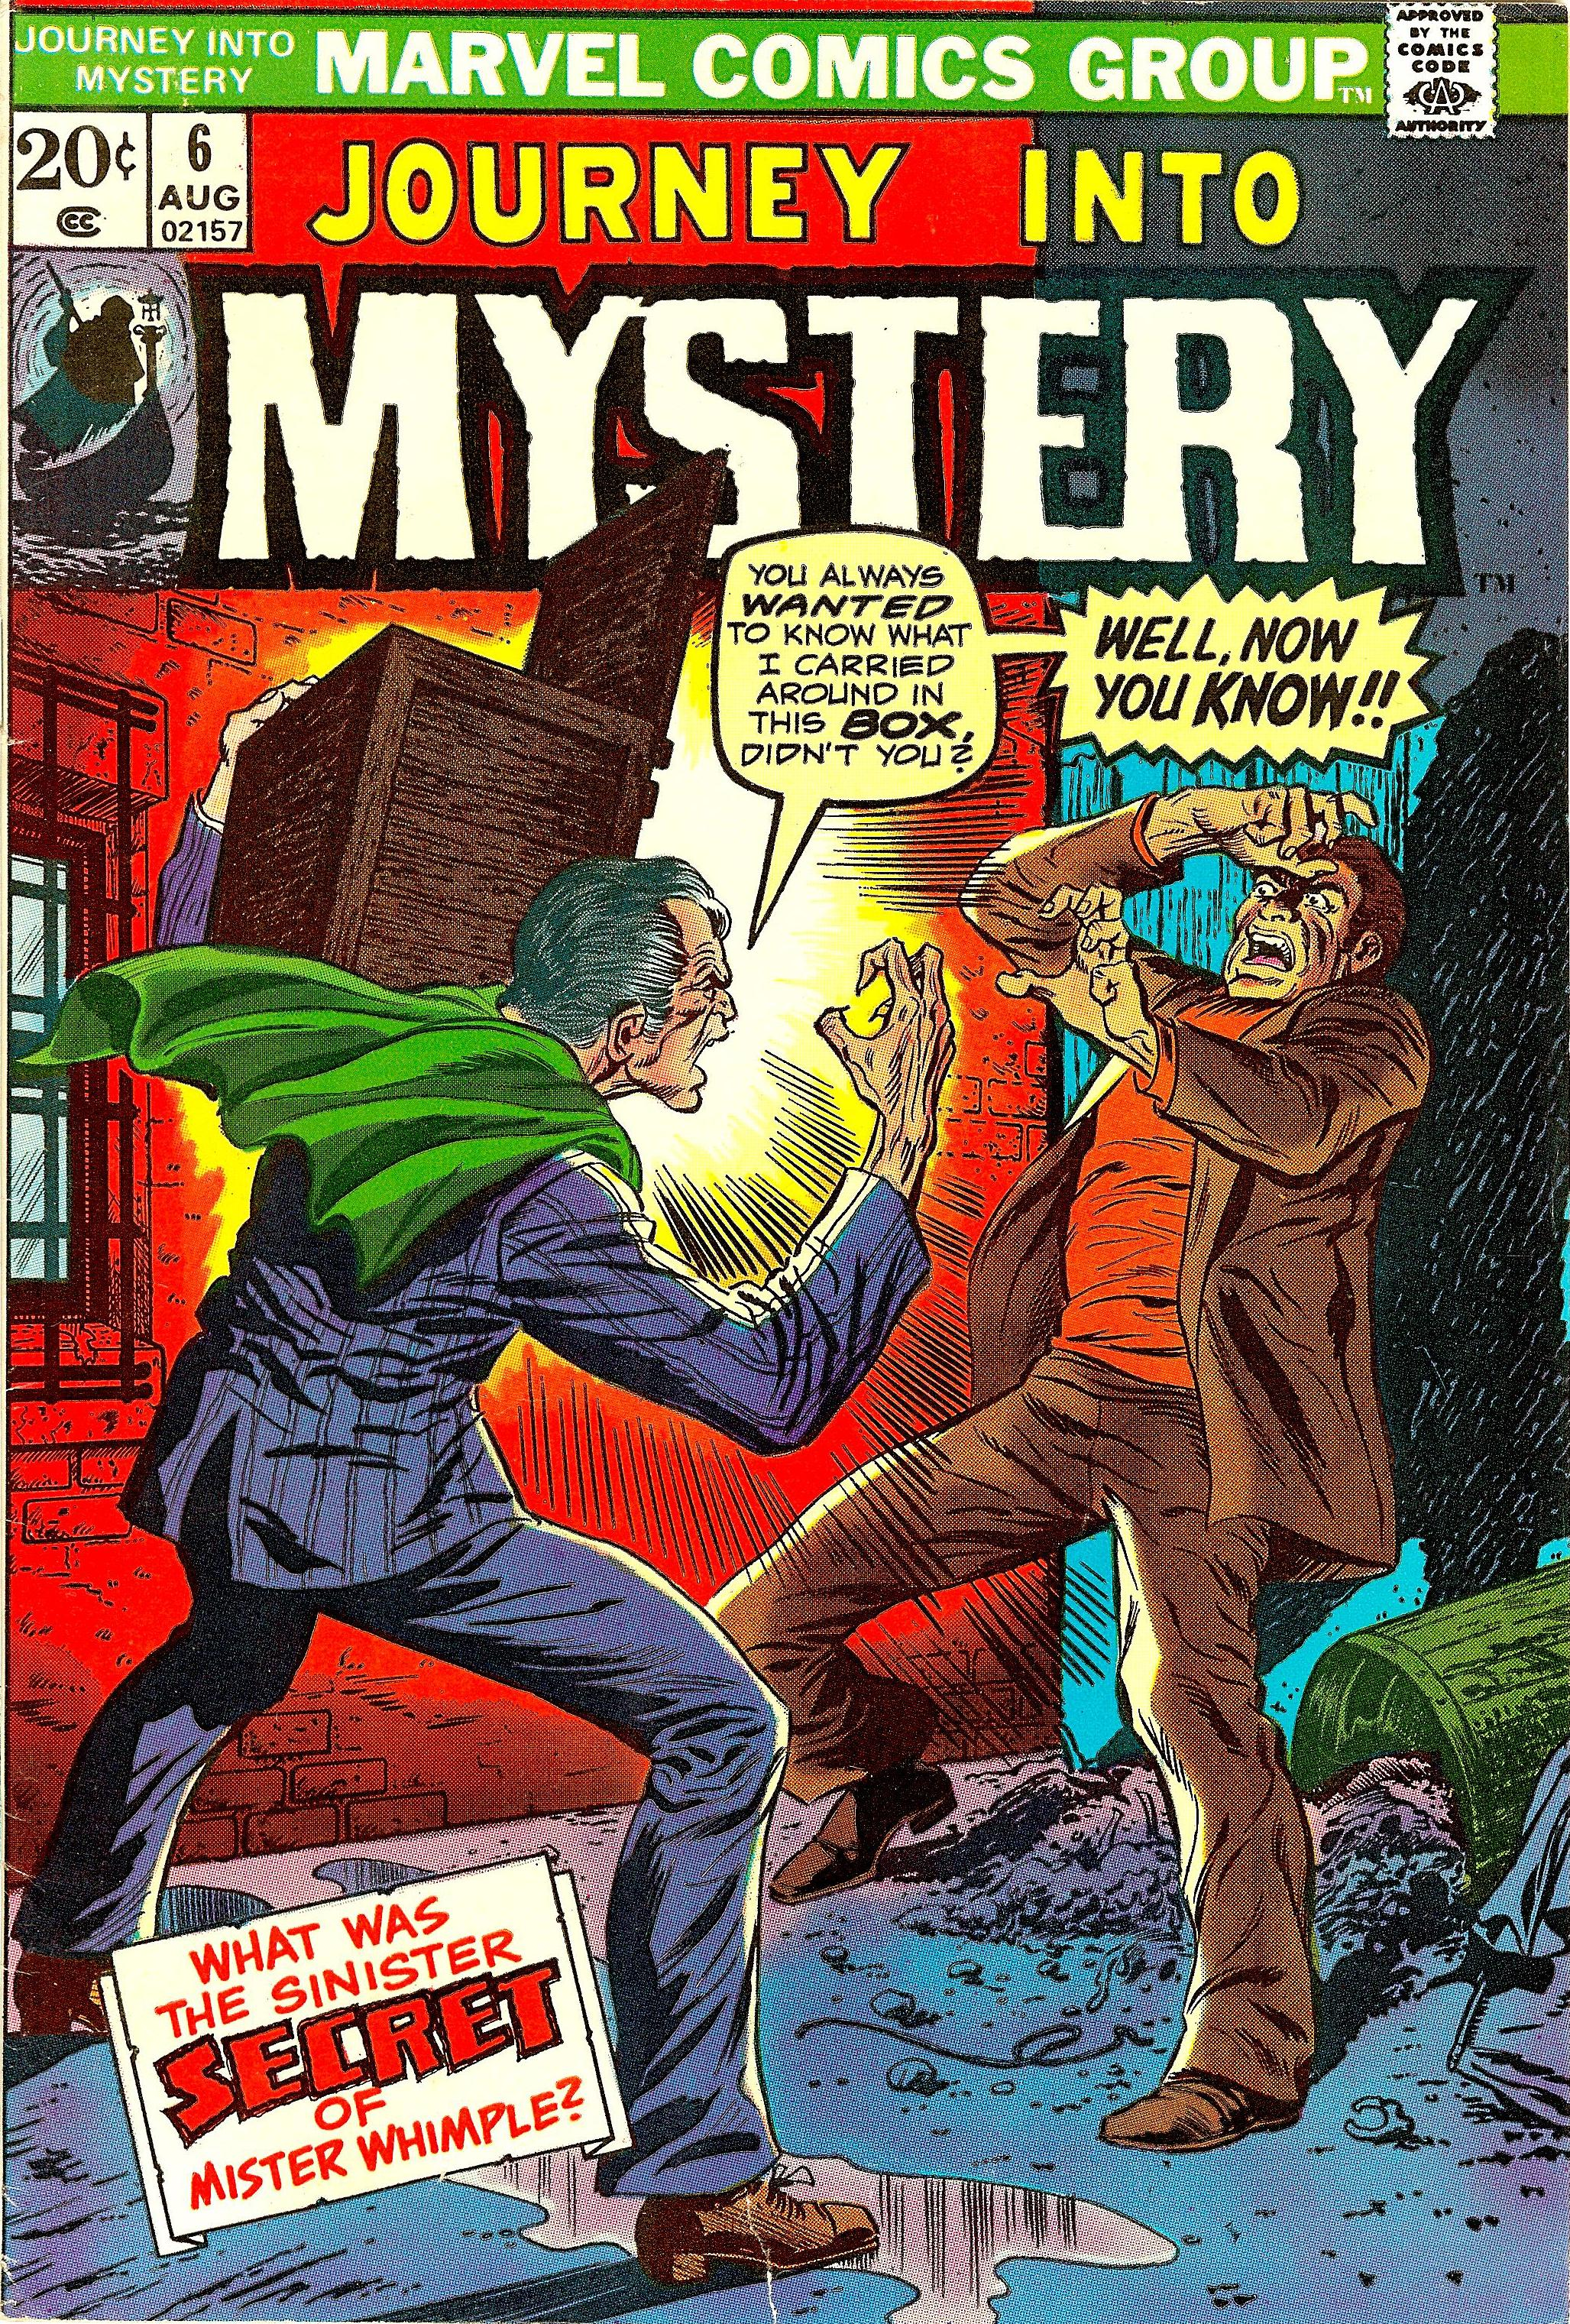 Journey into Mystery Vol 2 6